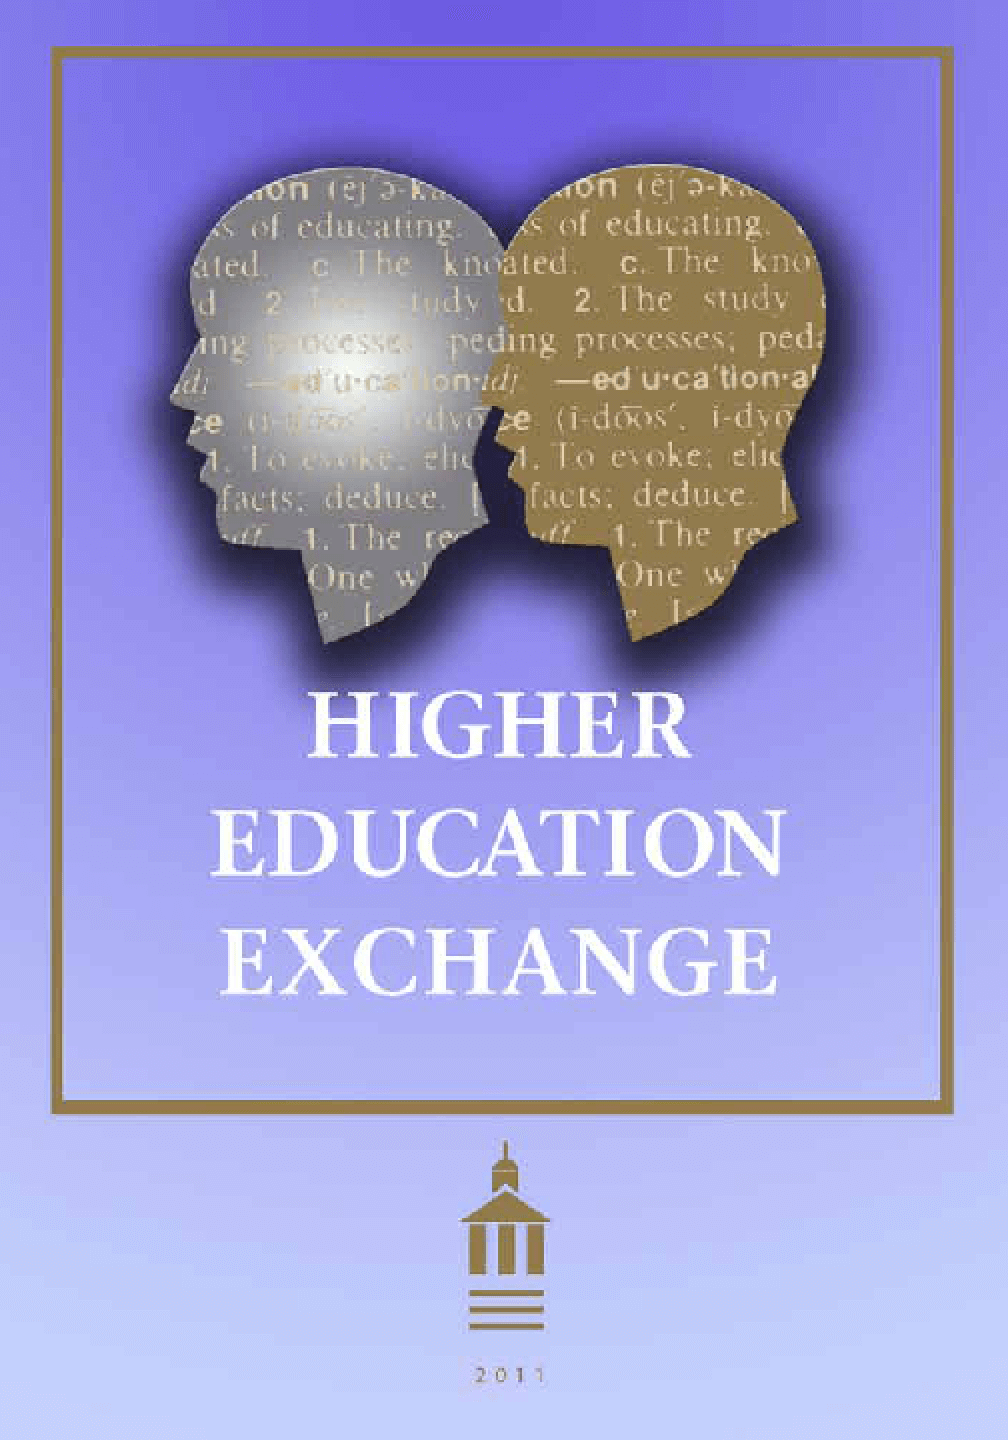 Higher Education Exchange: 2011